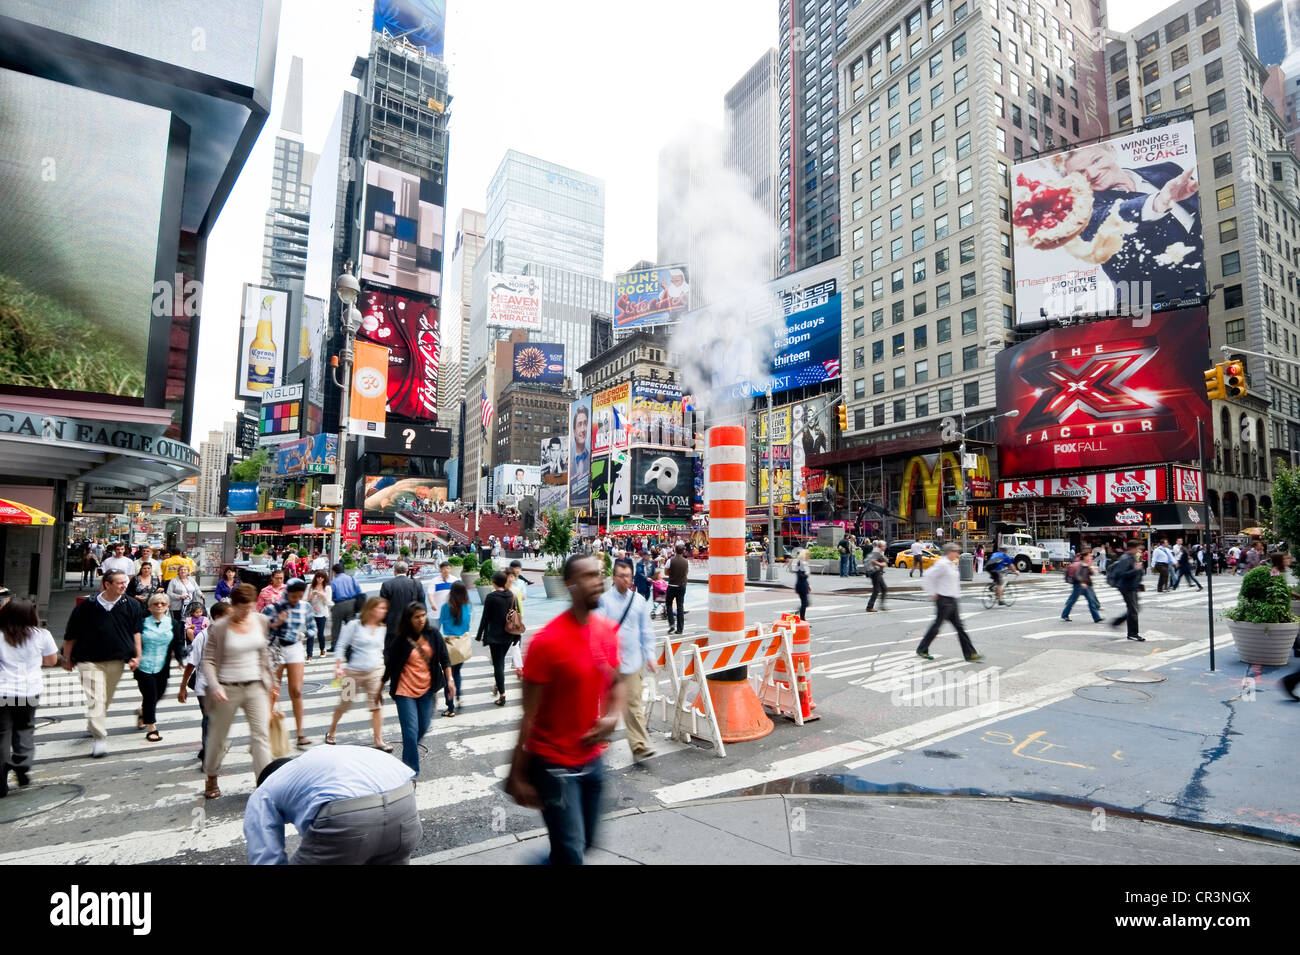 Morning rush hour in Times Square, Manhattan, New York, USA - Stock Image